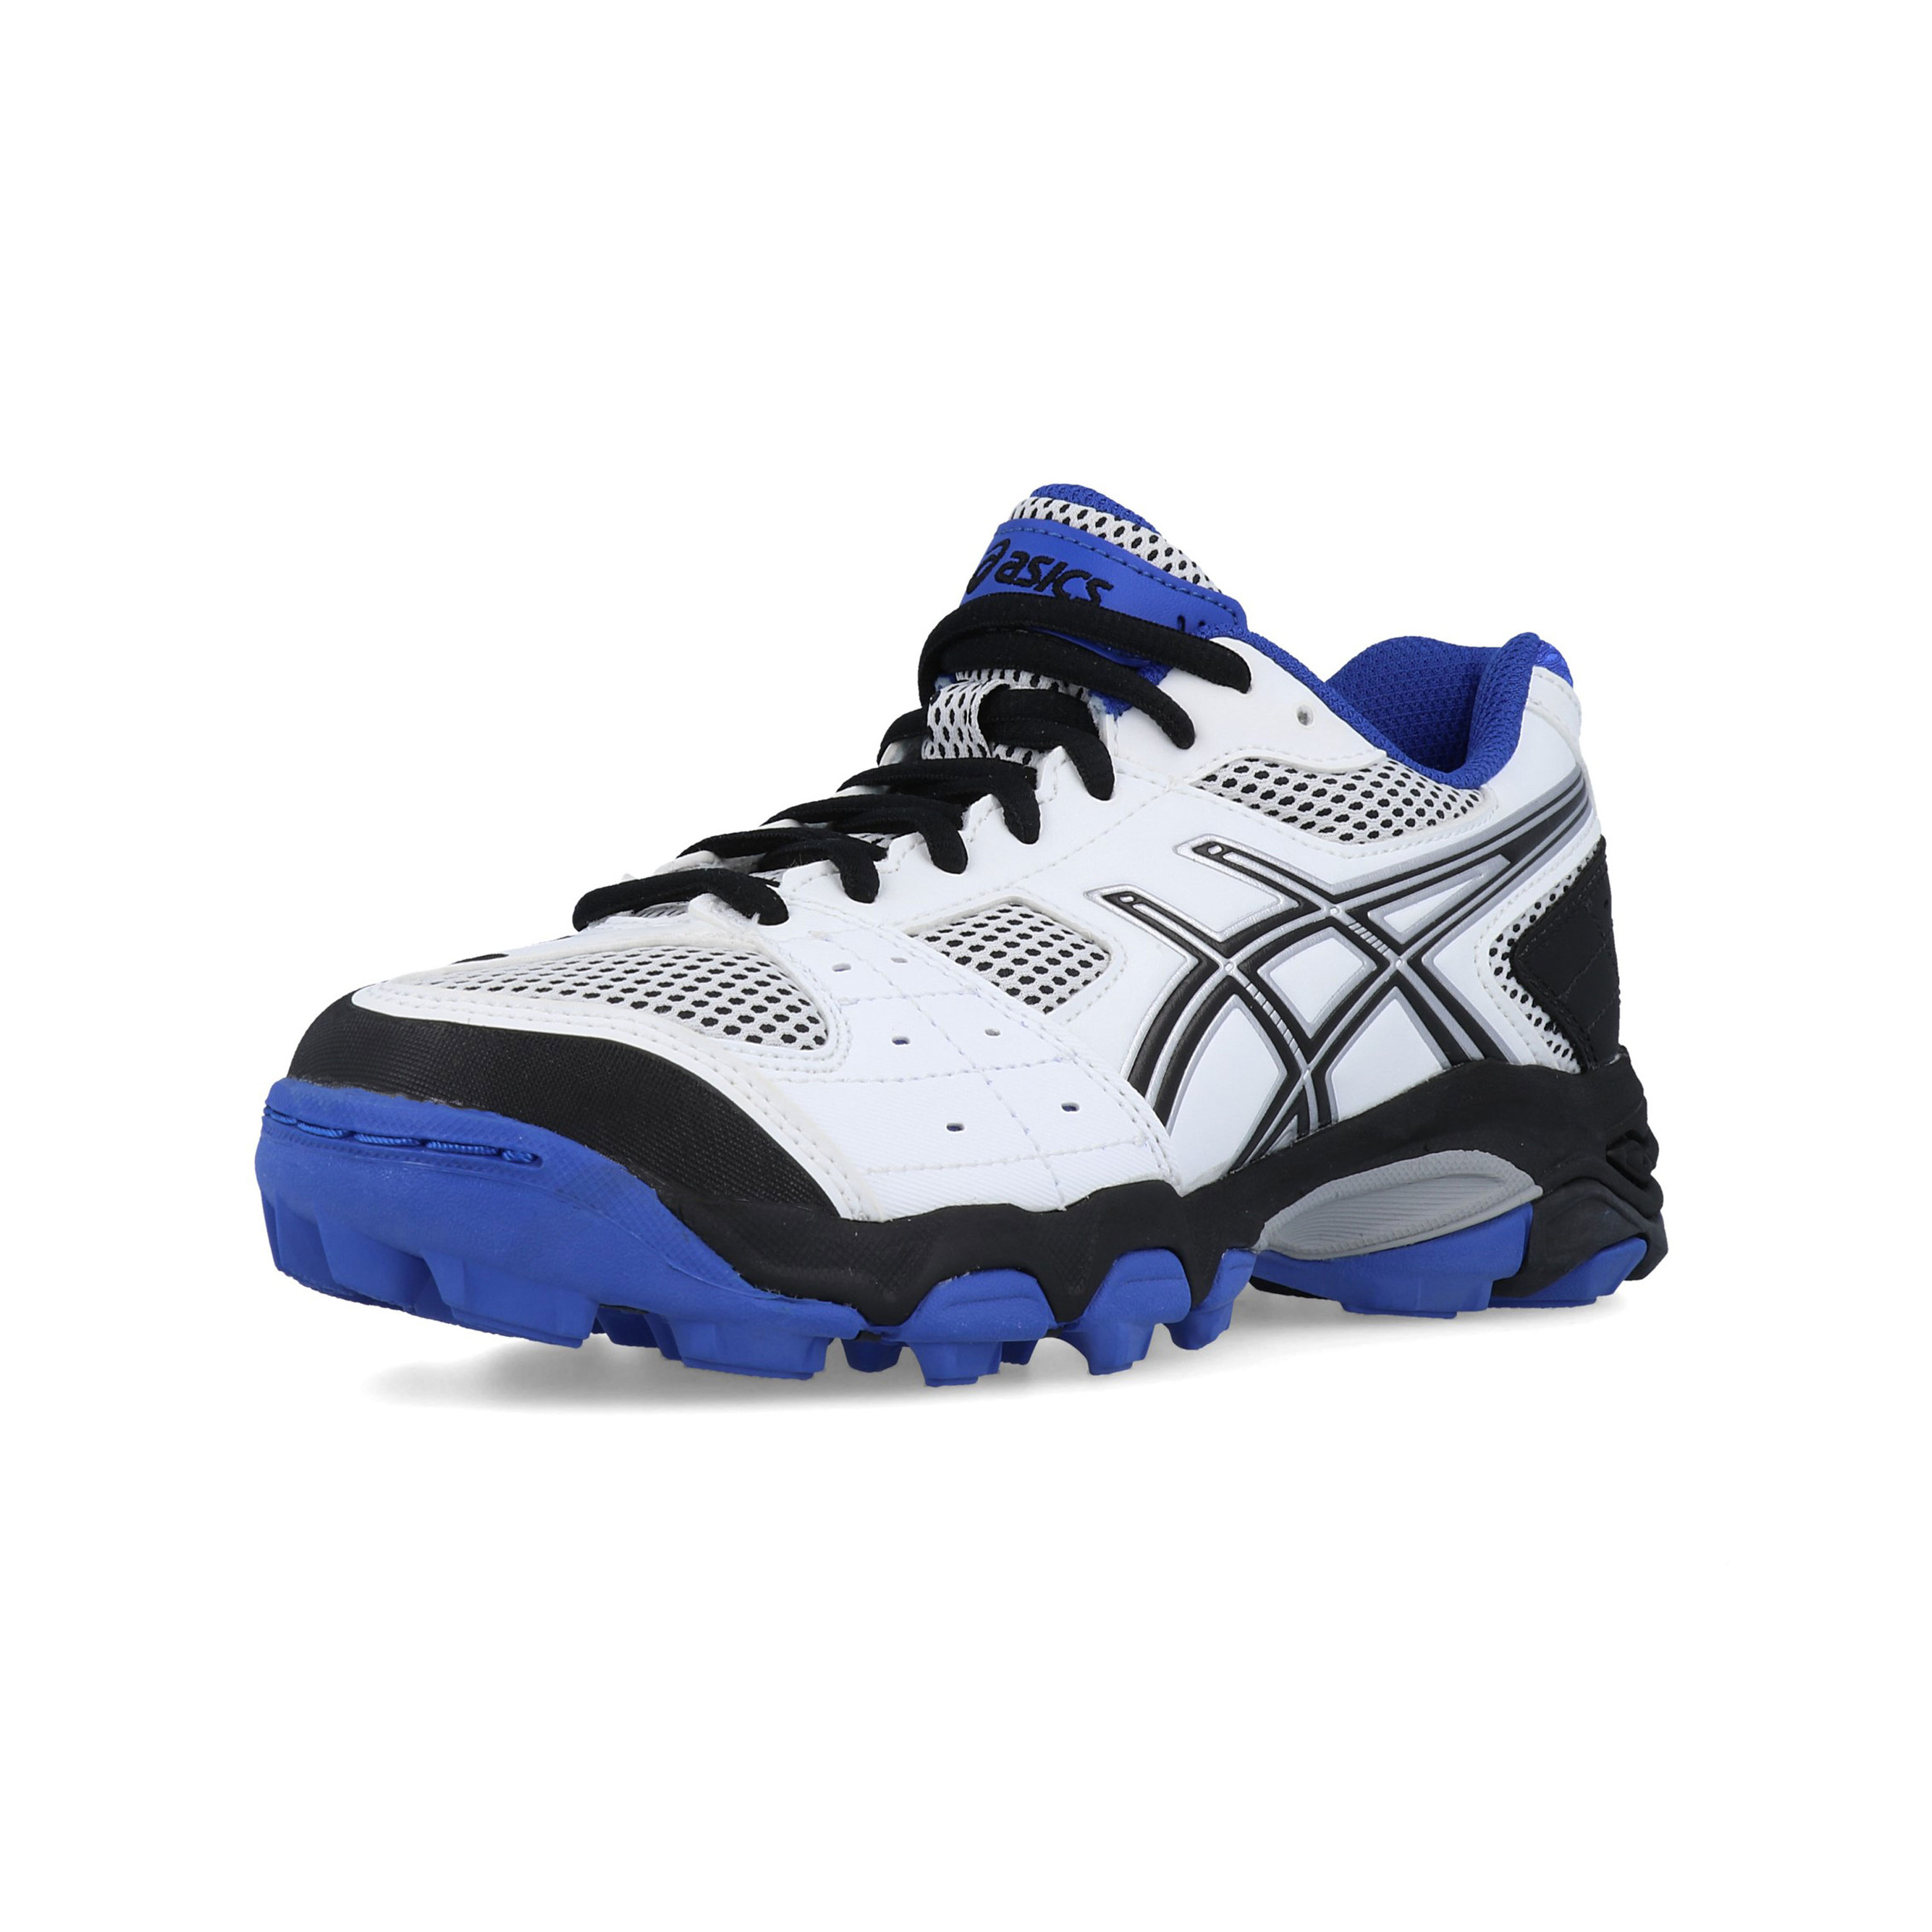 14c9fdf865c61 Asics Enfant Gel Blackheath 4 Gs Hockey Chaussures De Sport Baskets Blanc